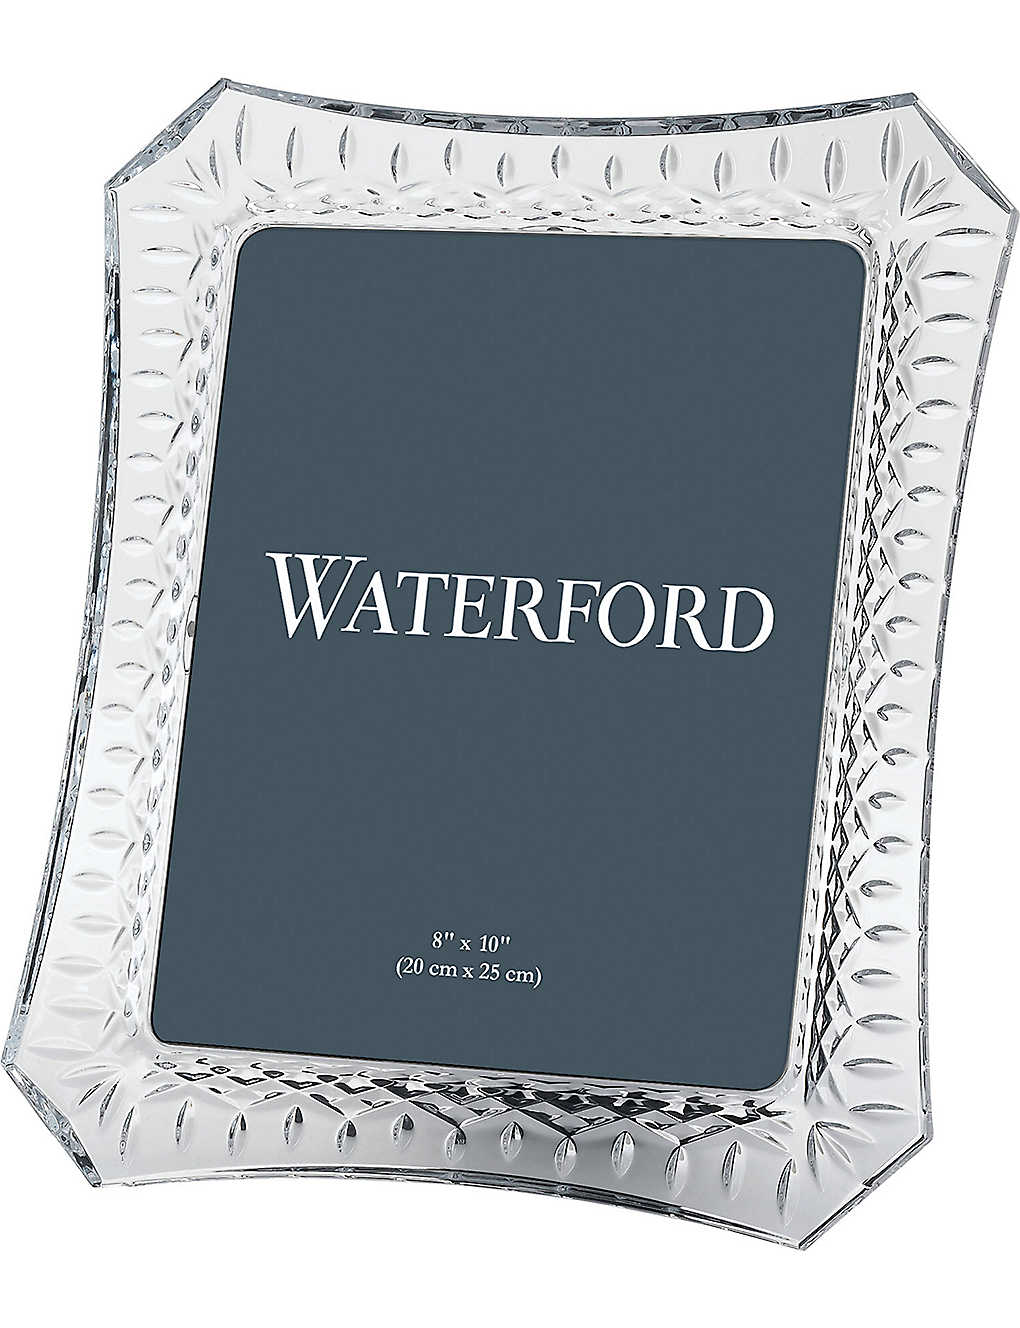 "WATERFORD: Lismore crystal picture frame 8"" x 10"""